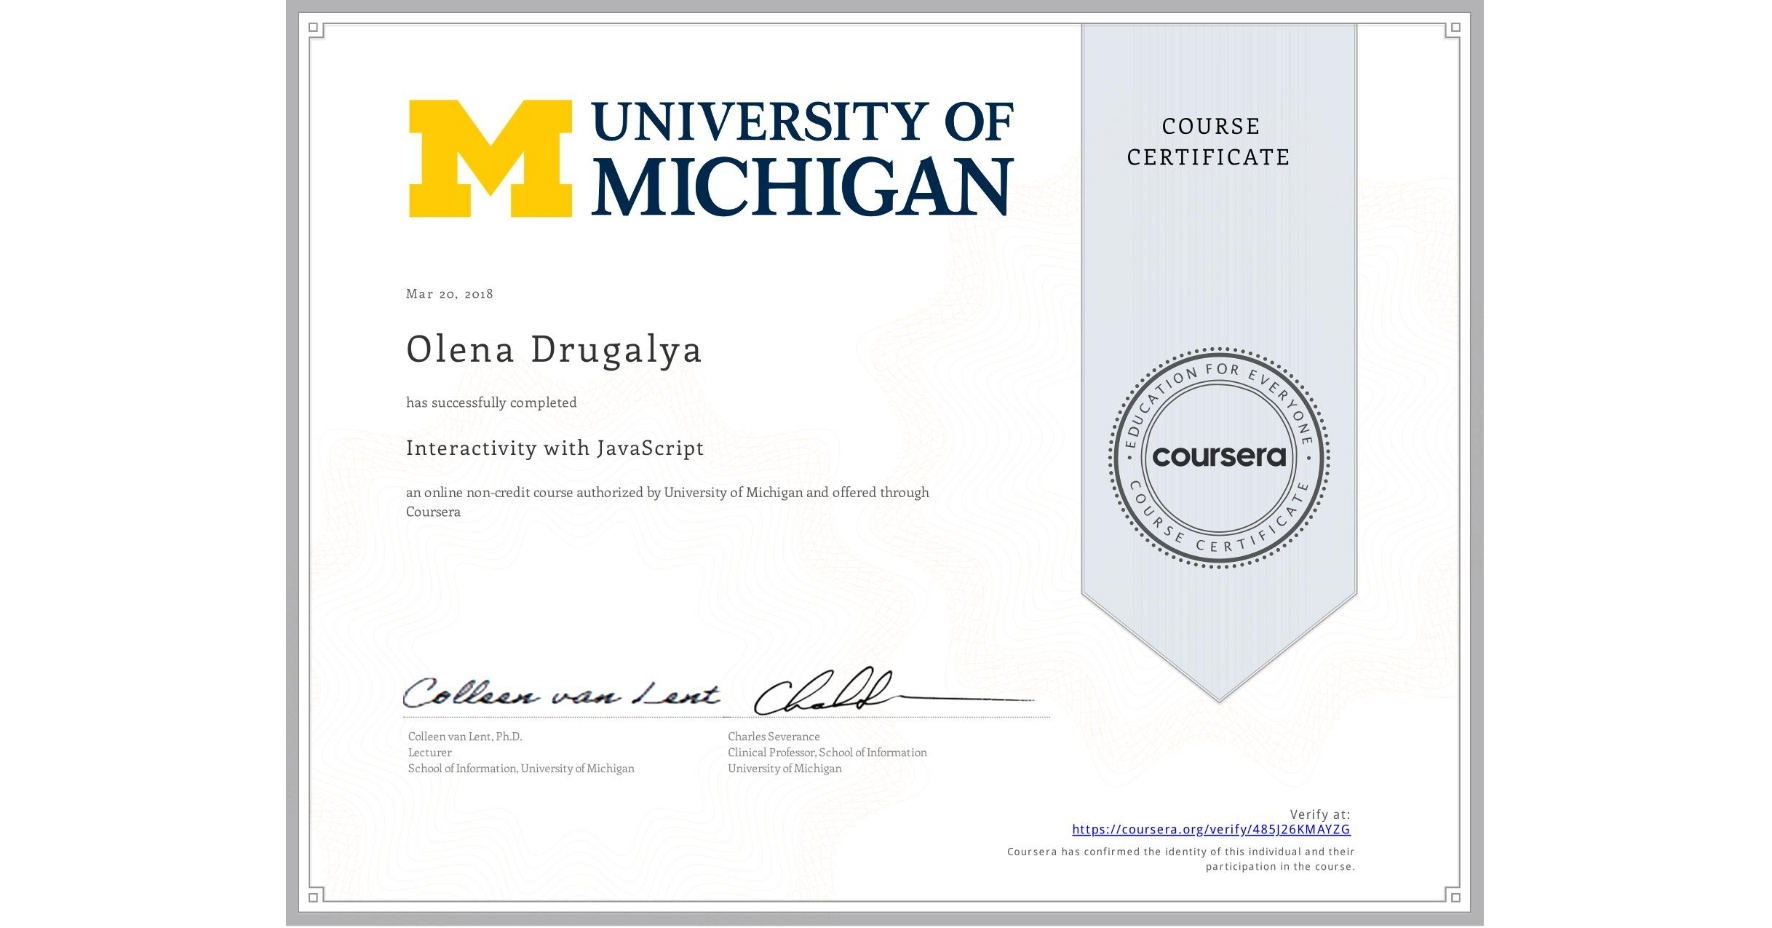 View certificate for Olena Drugalya, Interactivity with JavaScript, an online non-credit course authorized by University of Michigan and offered through Coursera